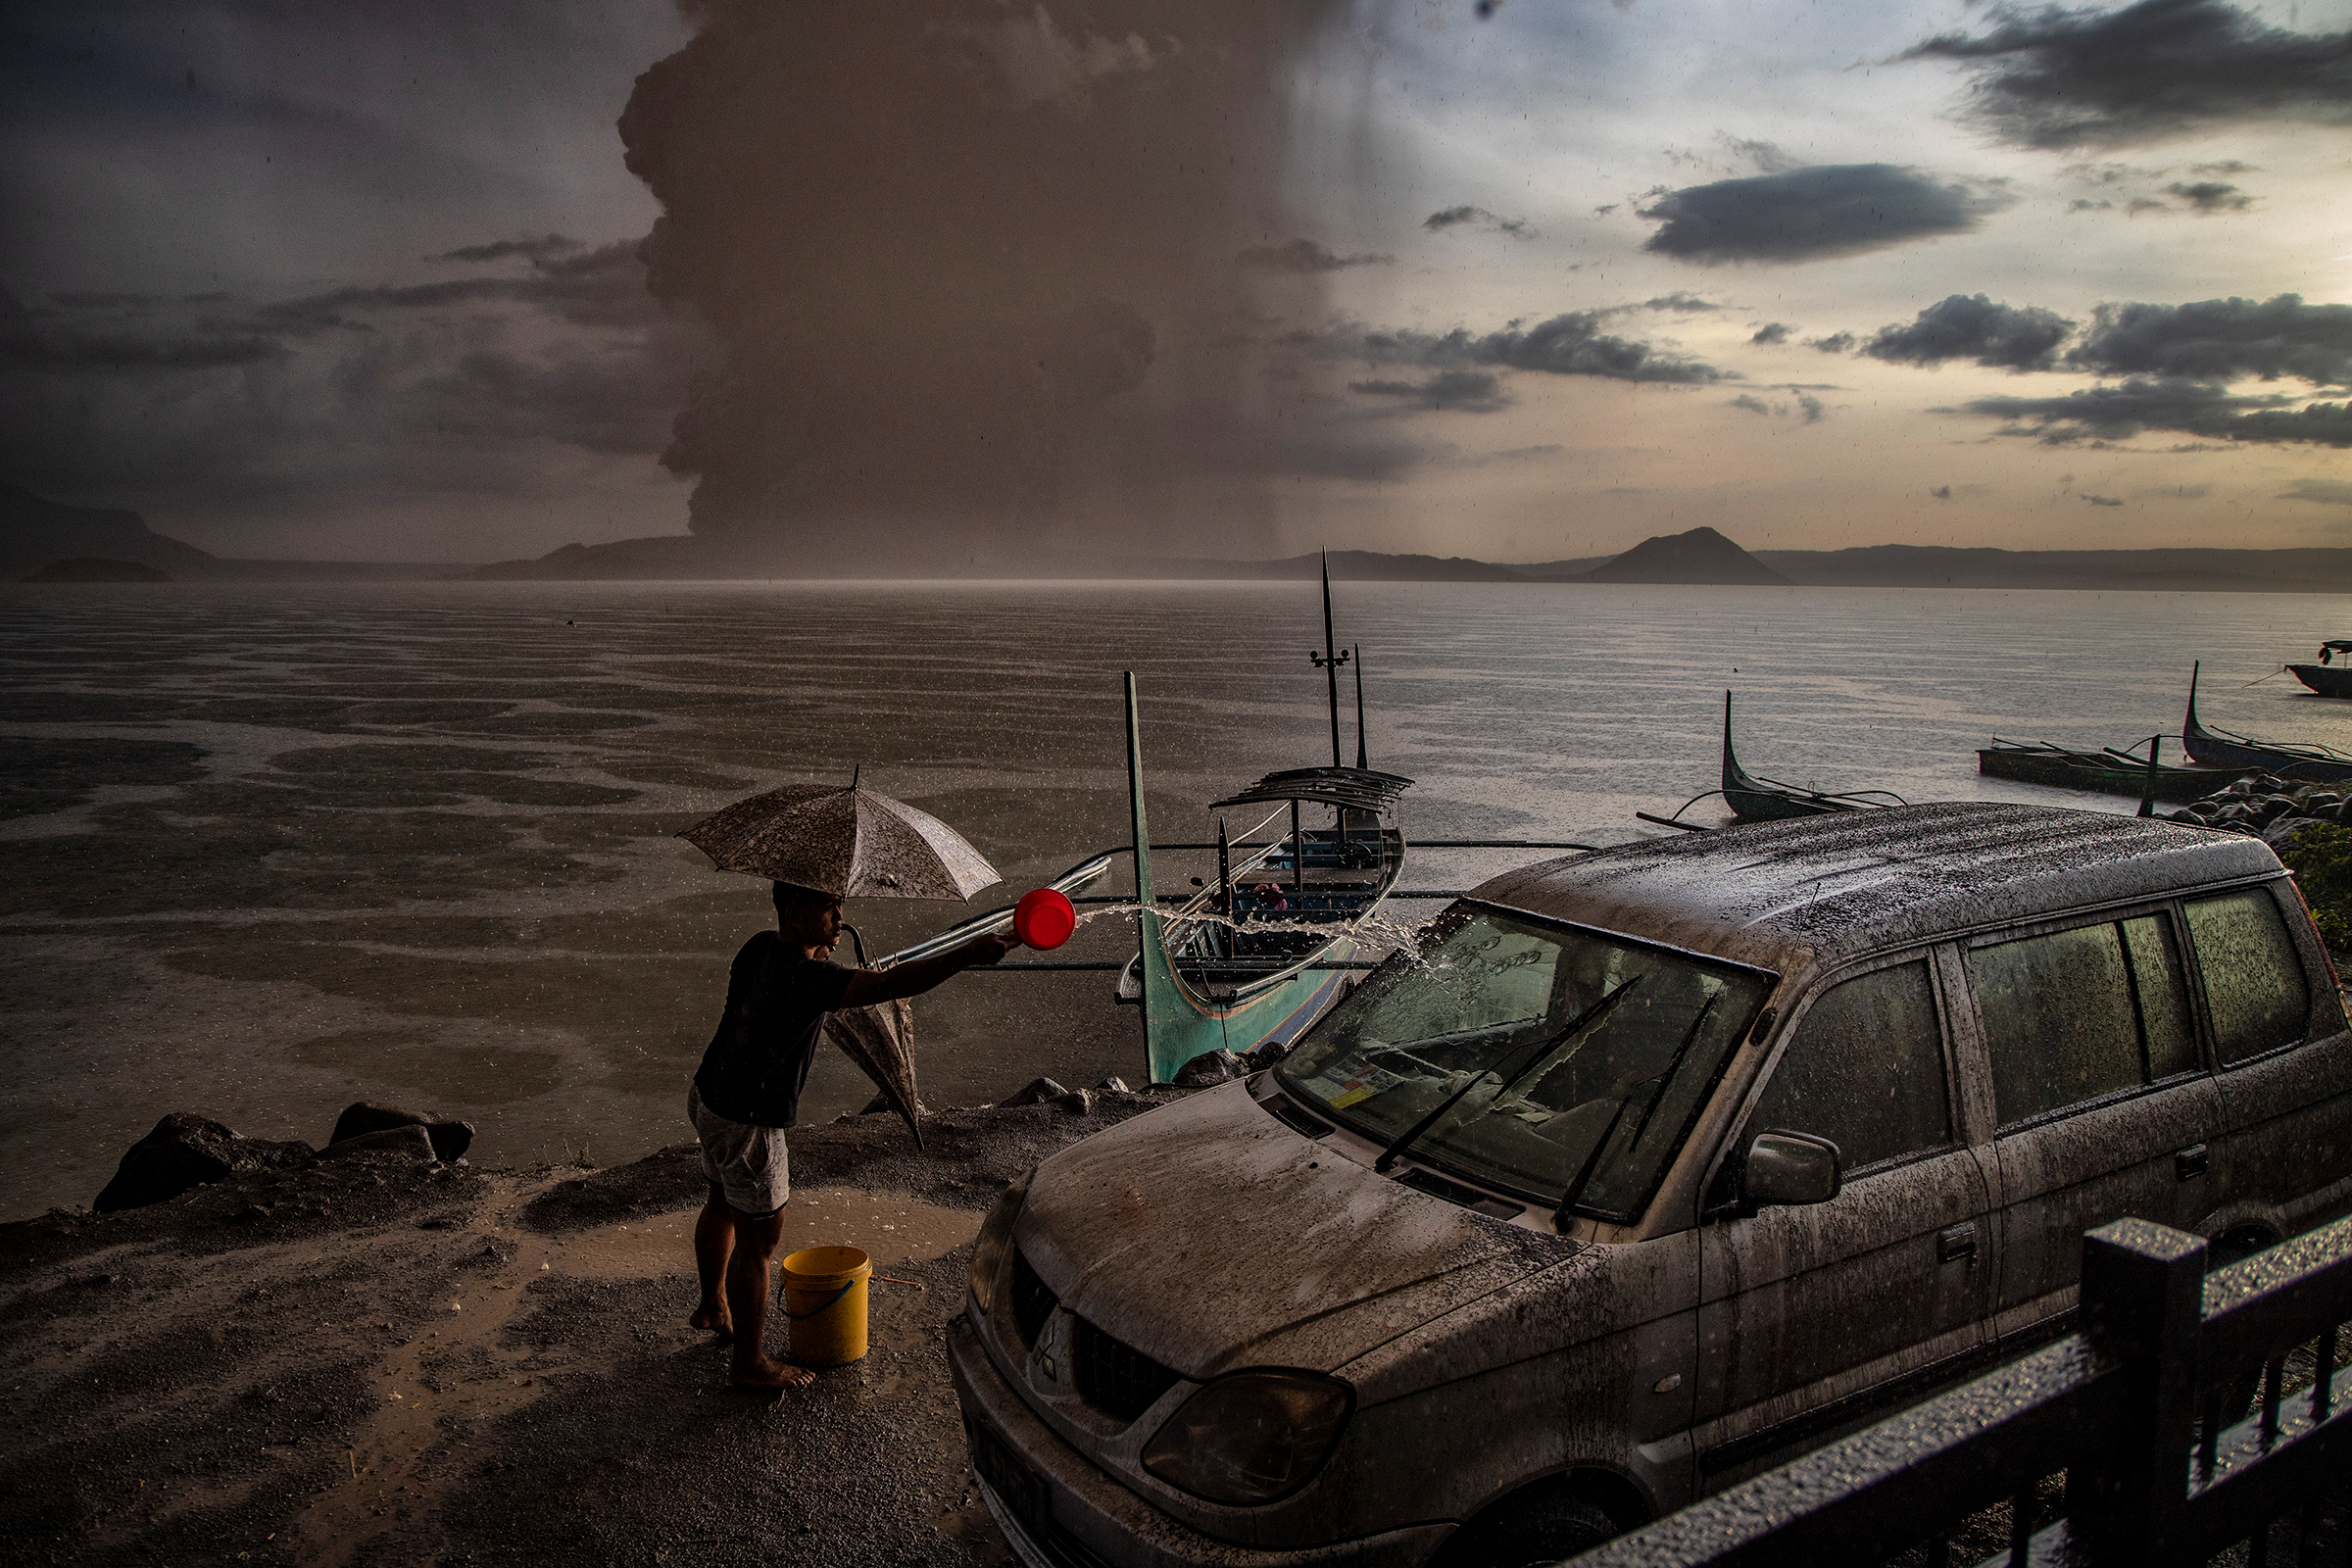 A resident in Talisay, in Batangas province, splashes water on a vehicle covered in ash mixed with rainwater as the Taal Volcano erupts on Jan. 12.